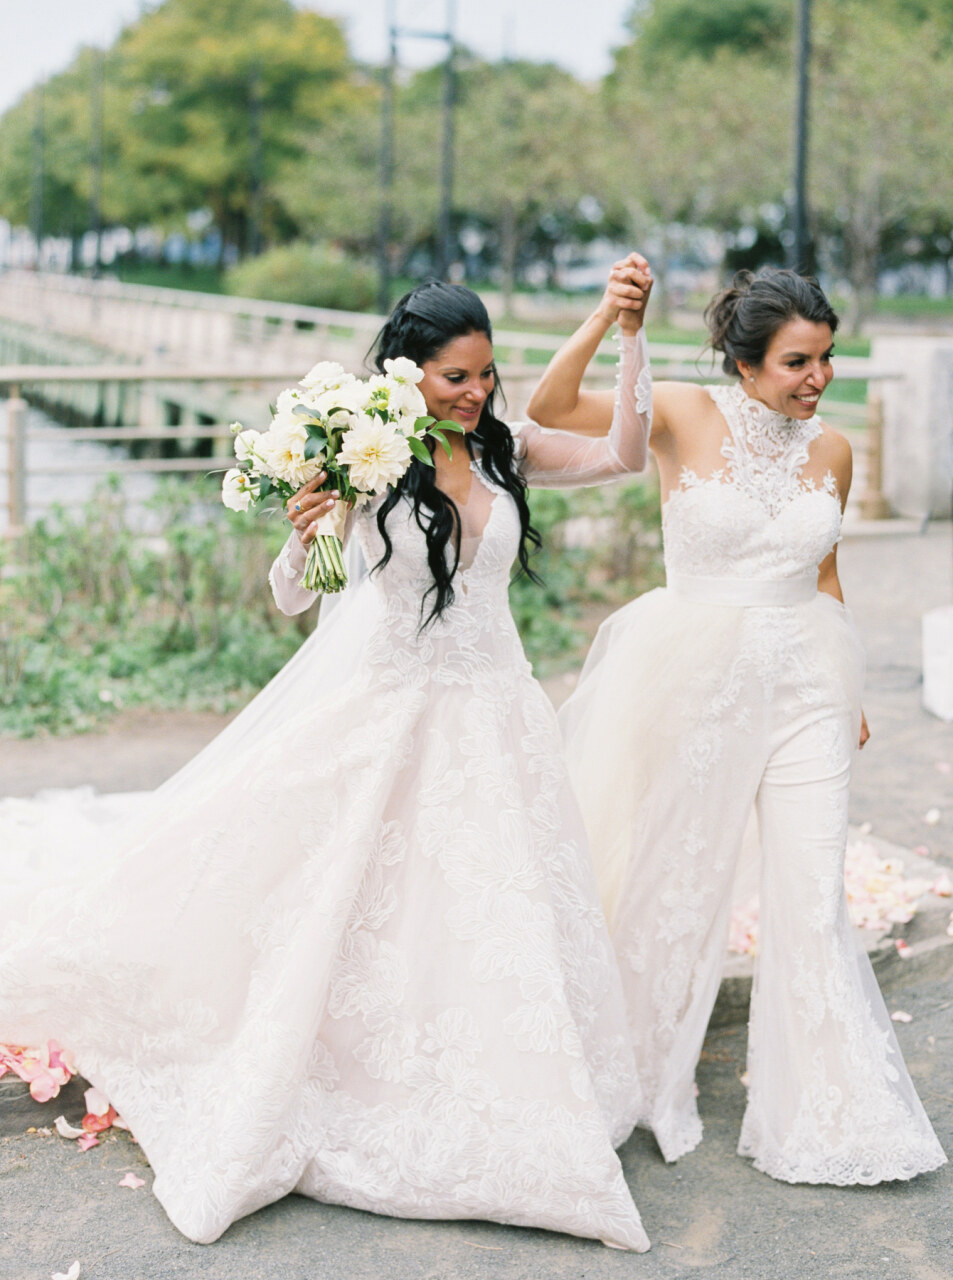 brides lifting their held hands during wedding ceremony recessional